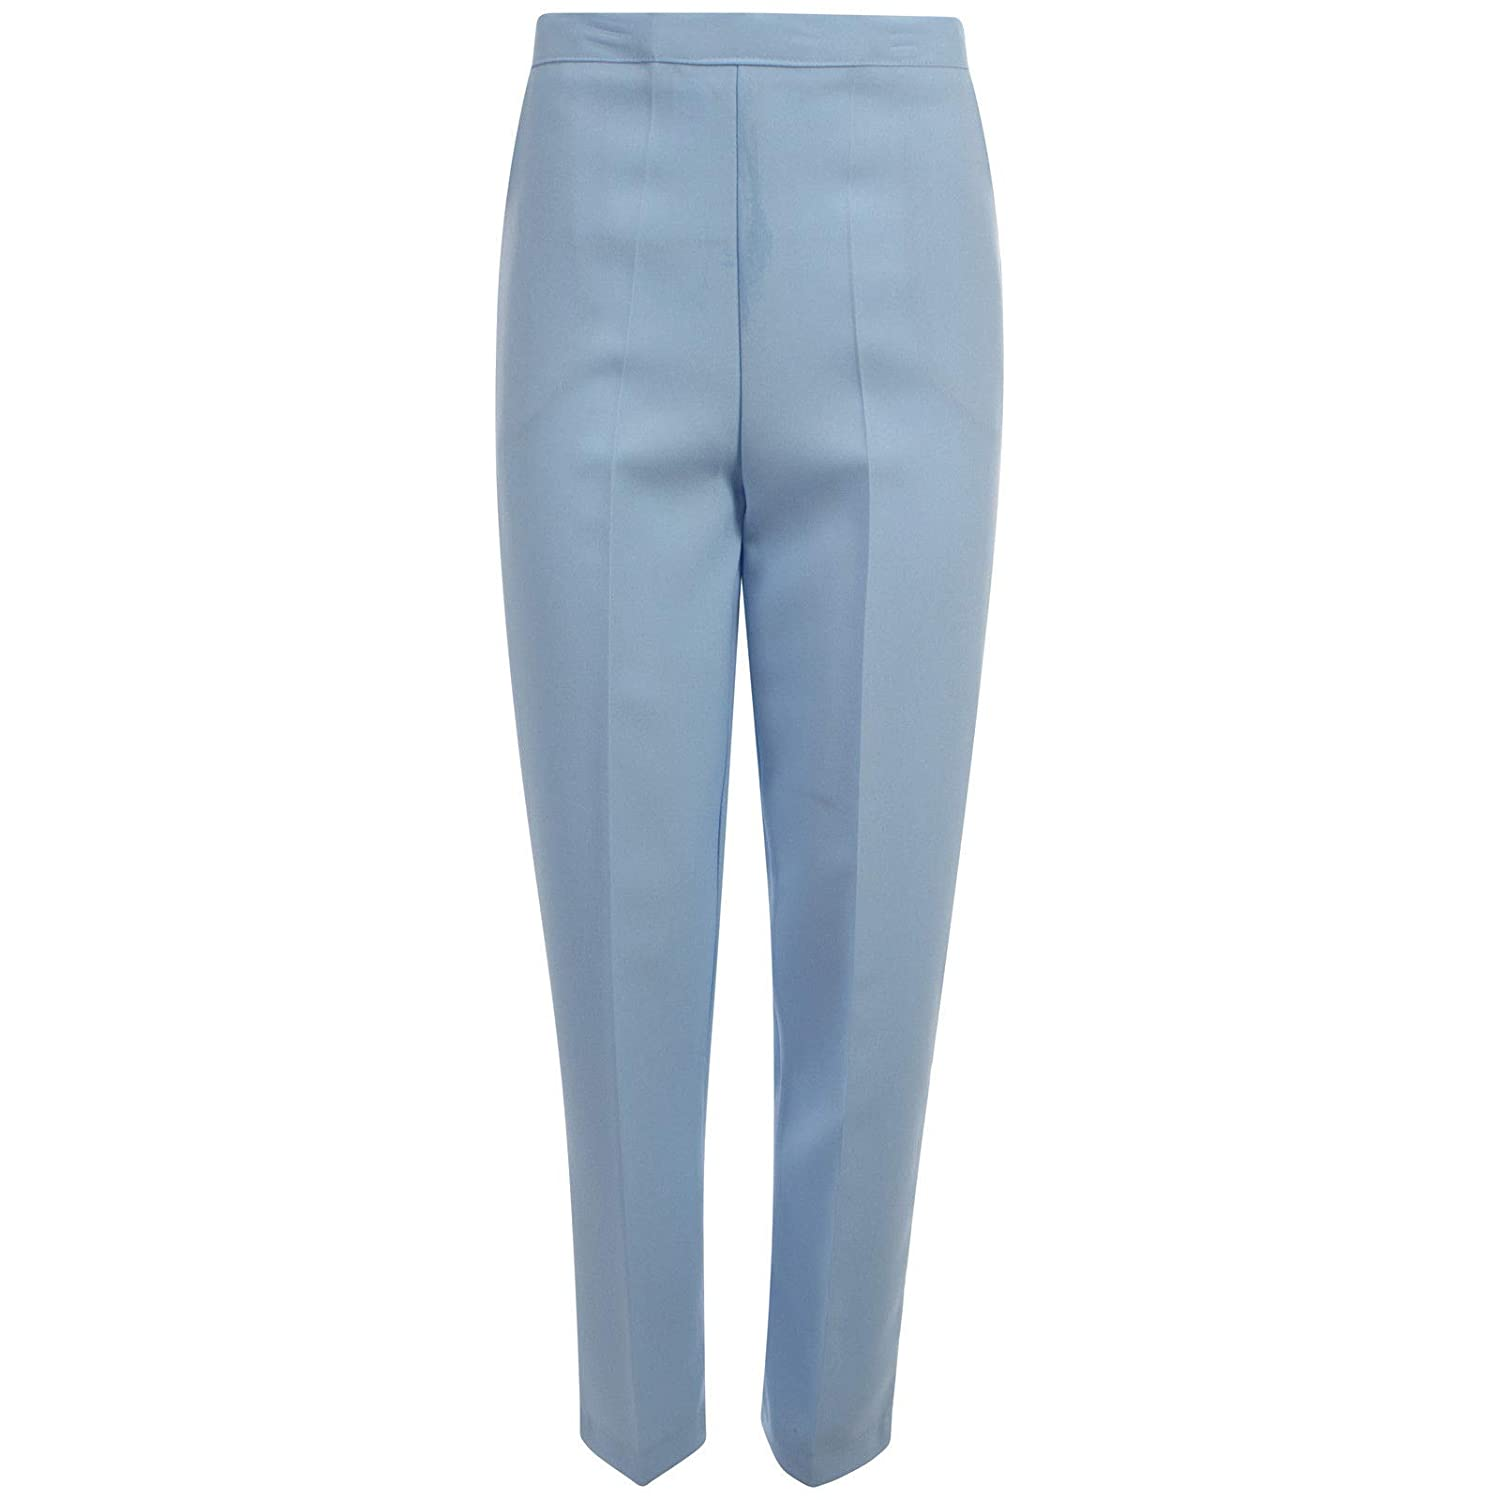 100% UK Made Ladies Half Elasticated Waist Trousers Pants